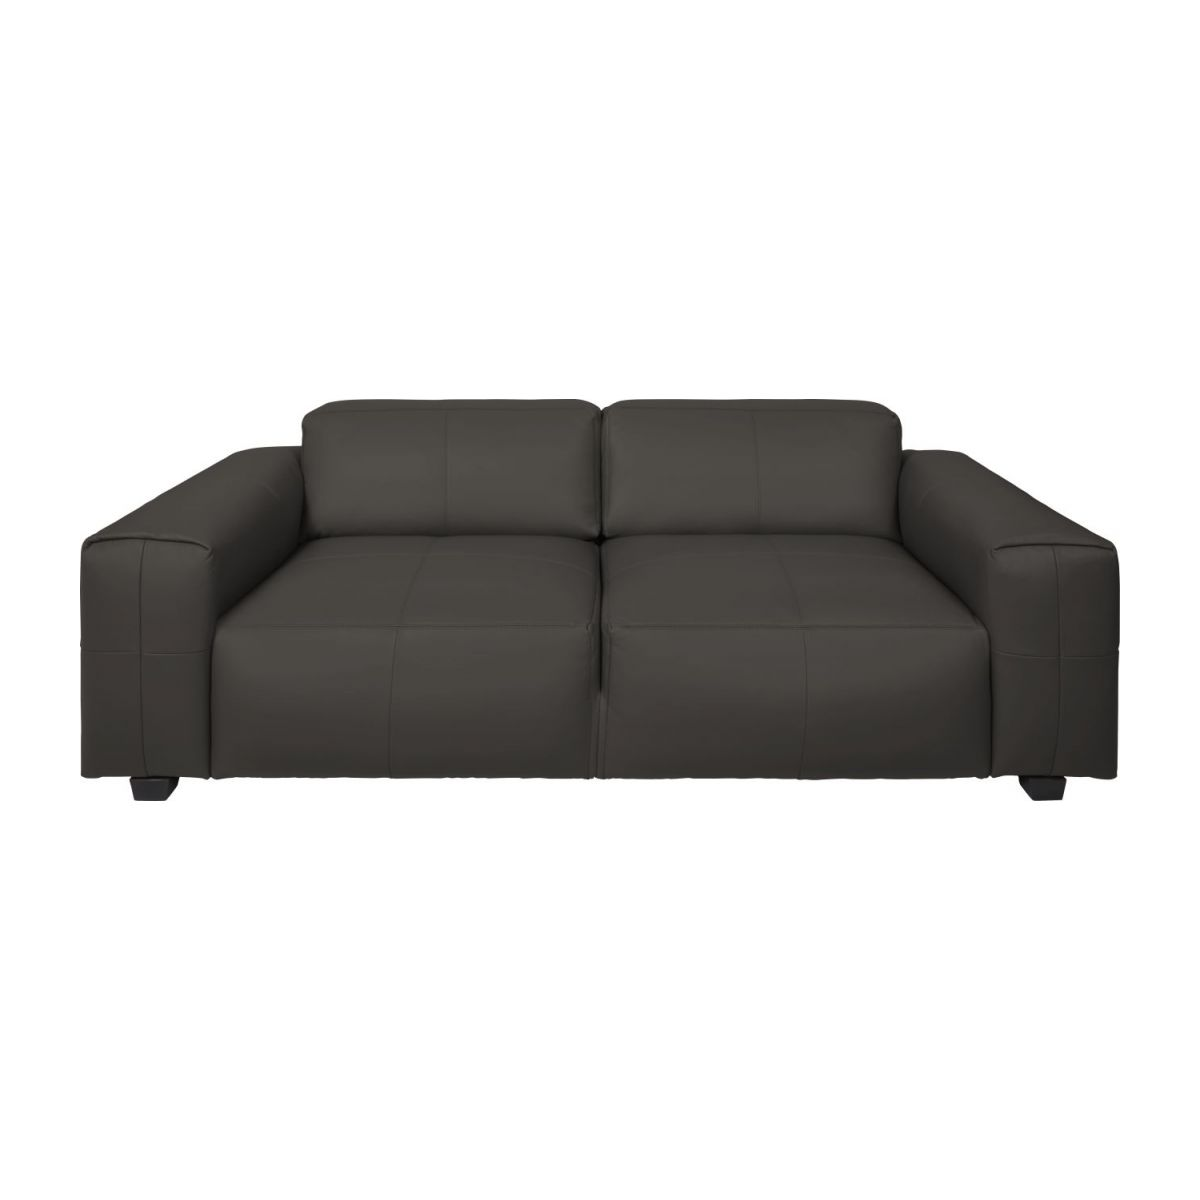 3 seater sofa in Savoy semi-aniline leather, dark brown amaretto n°2